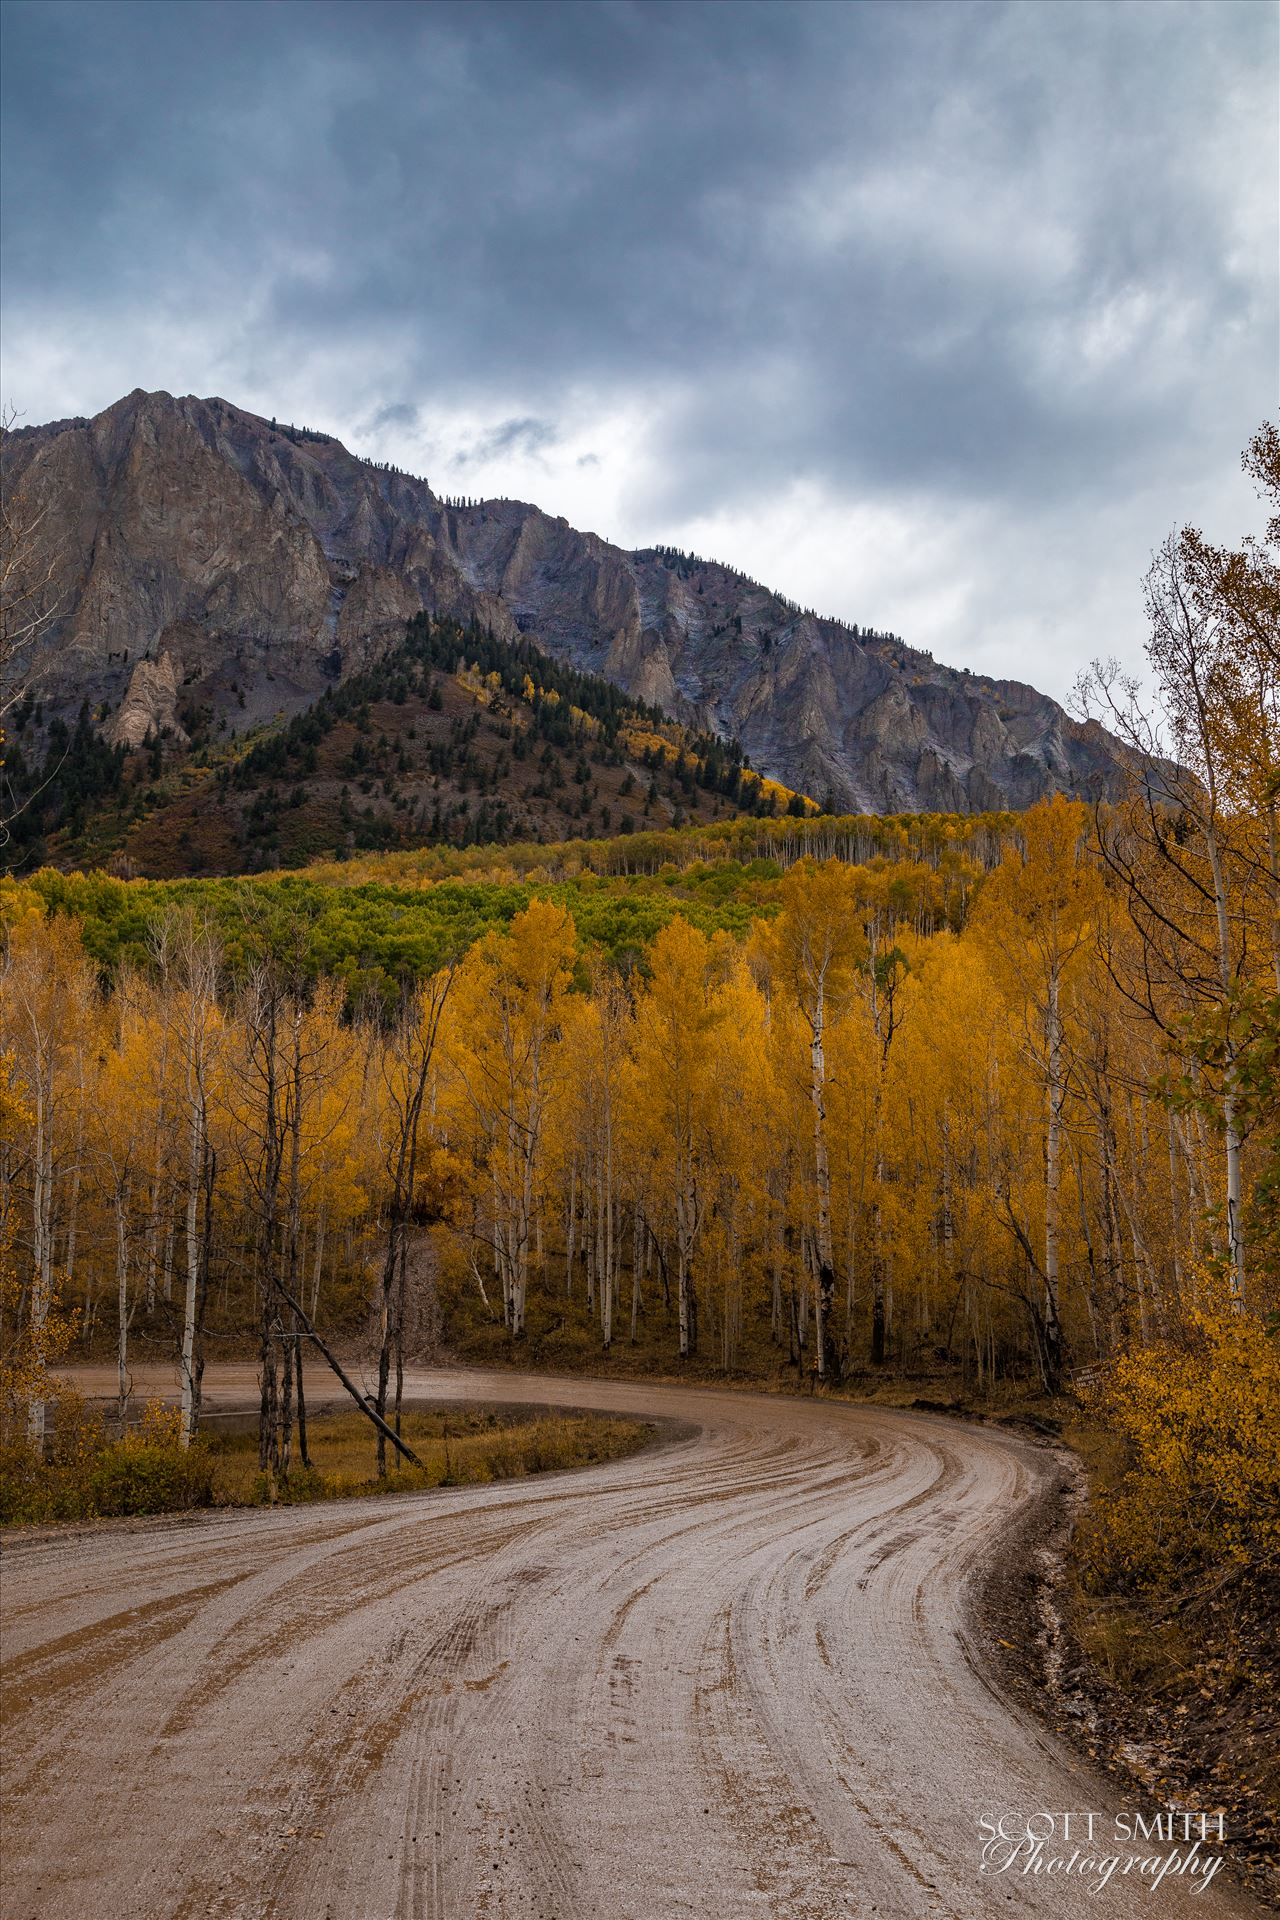 Marcellina Mountain 1 Marcellina Mountain from Kebler Pass, on the way to Creste Butte, Saturday 9/29/17. by Scott Smith Photos